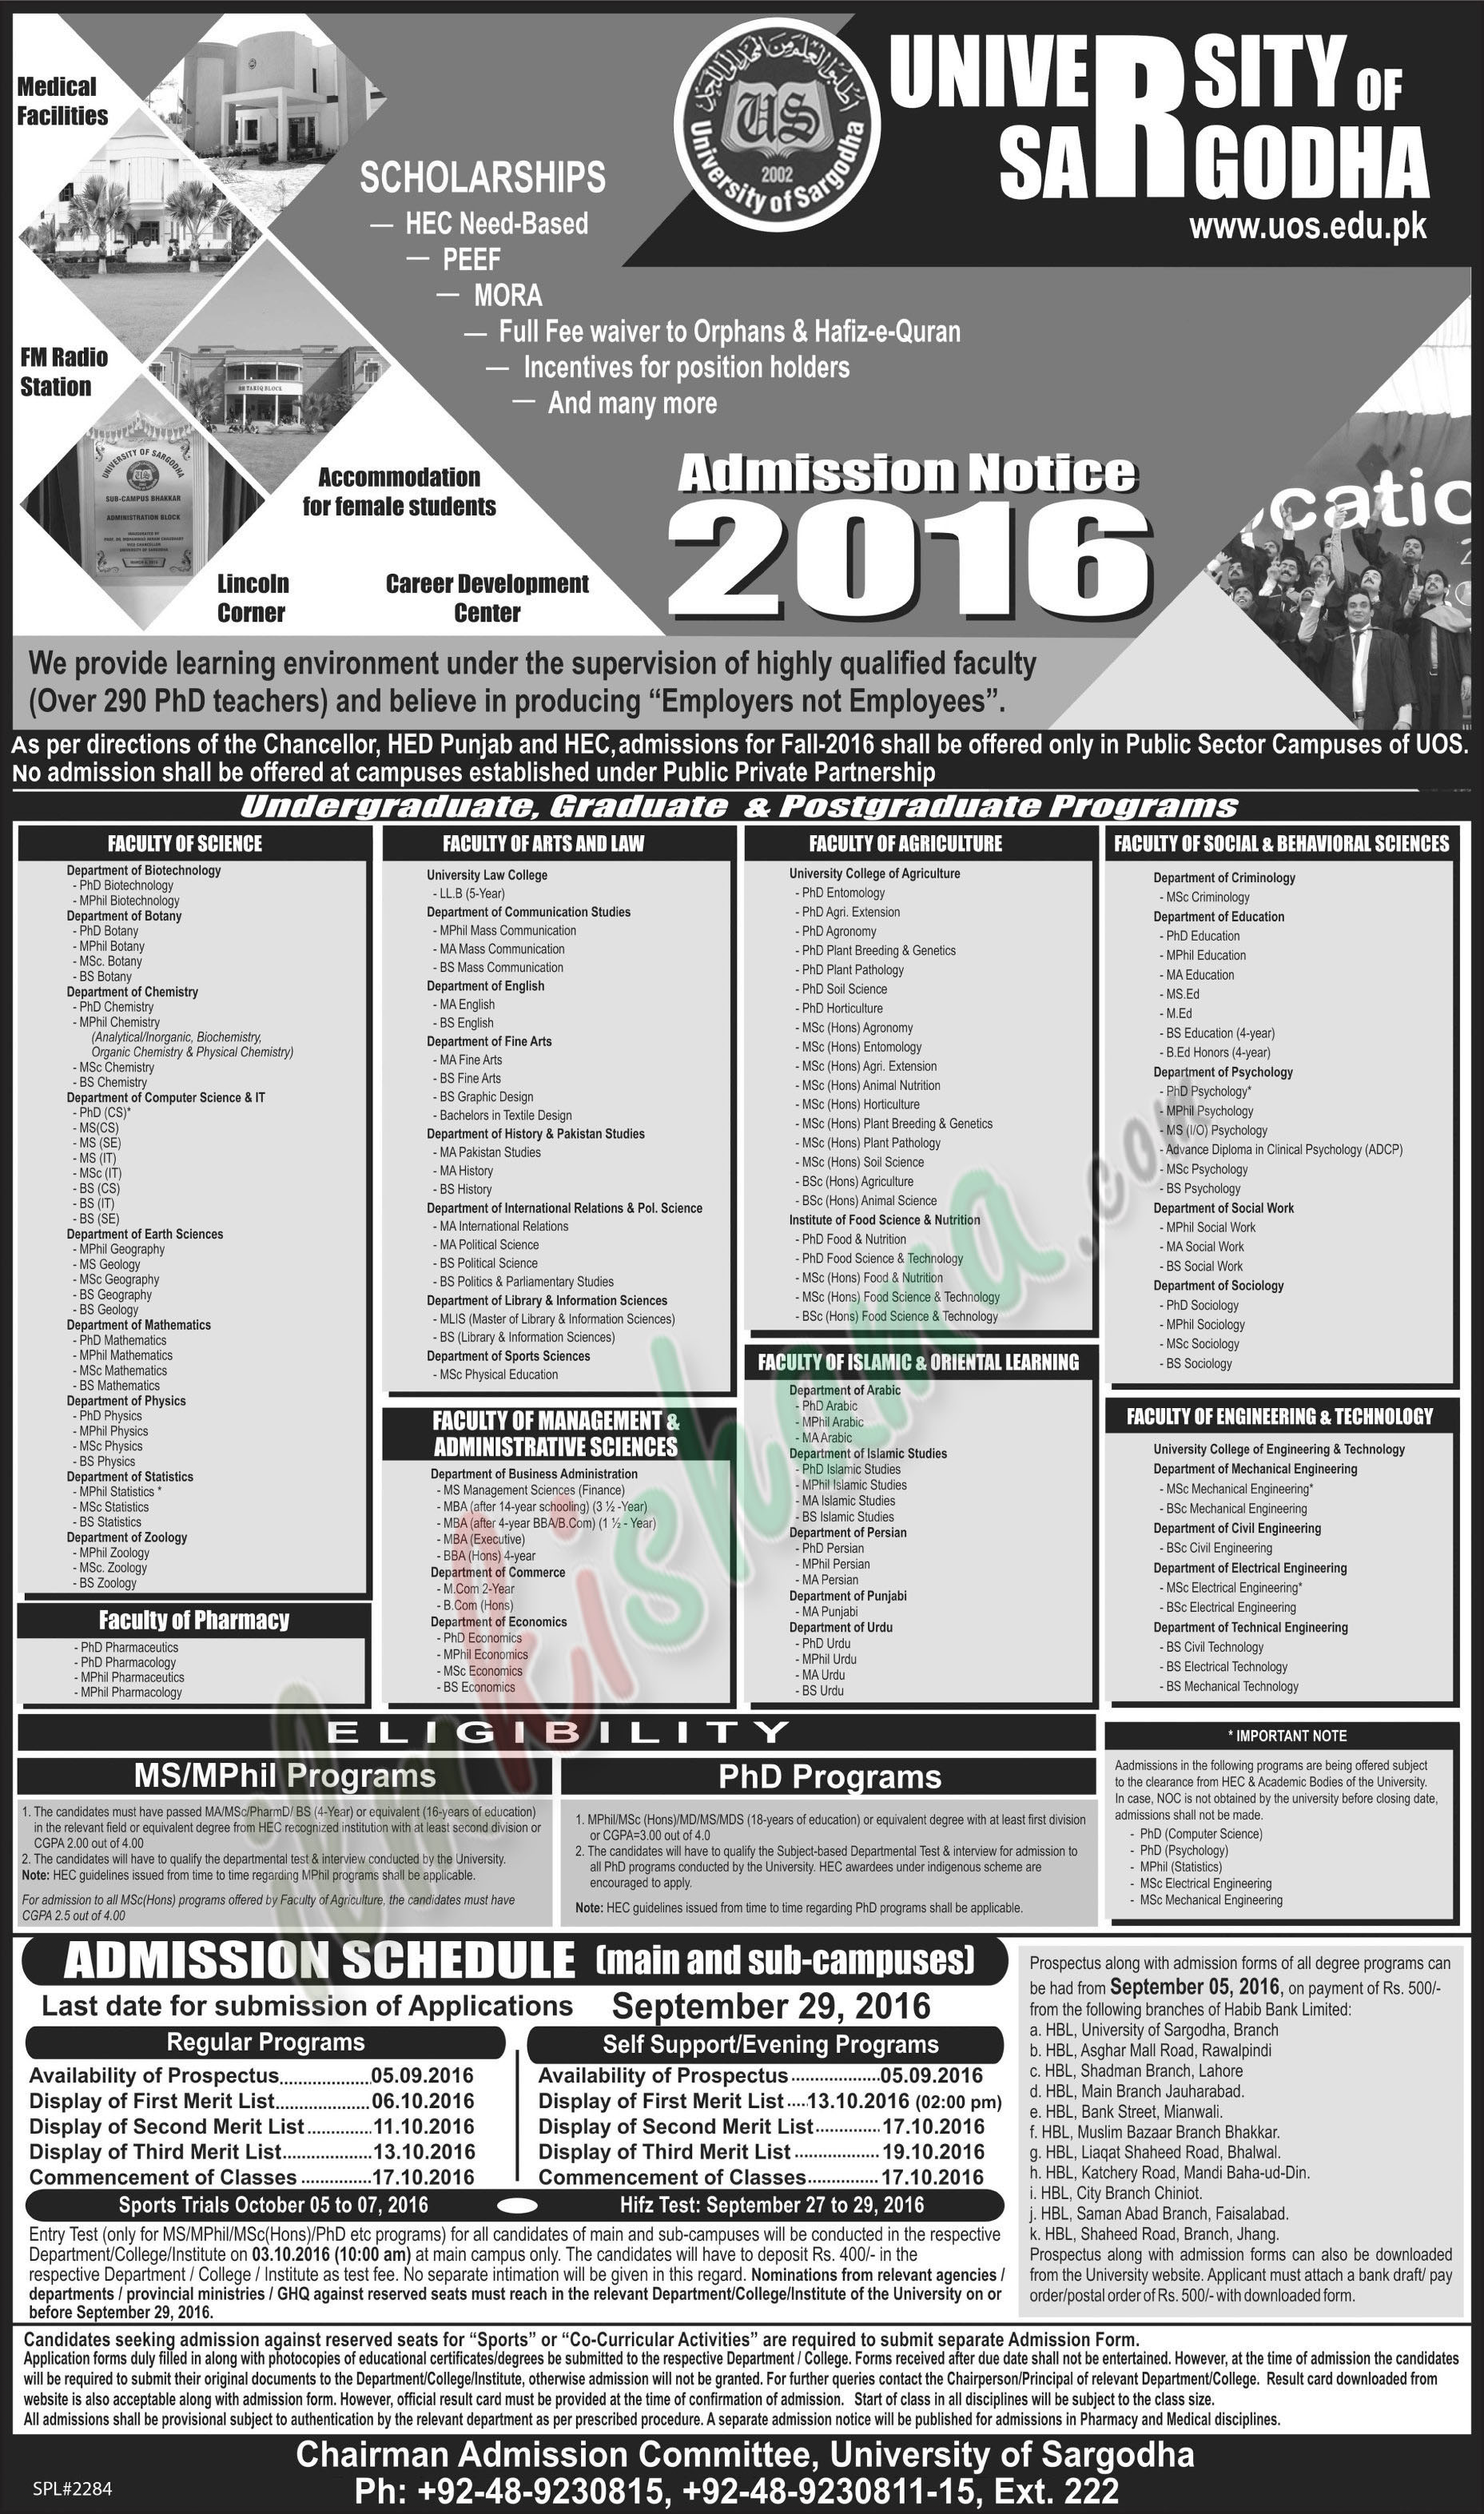 University of sargodha regular admissions 2016